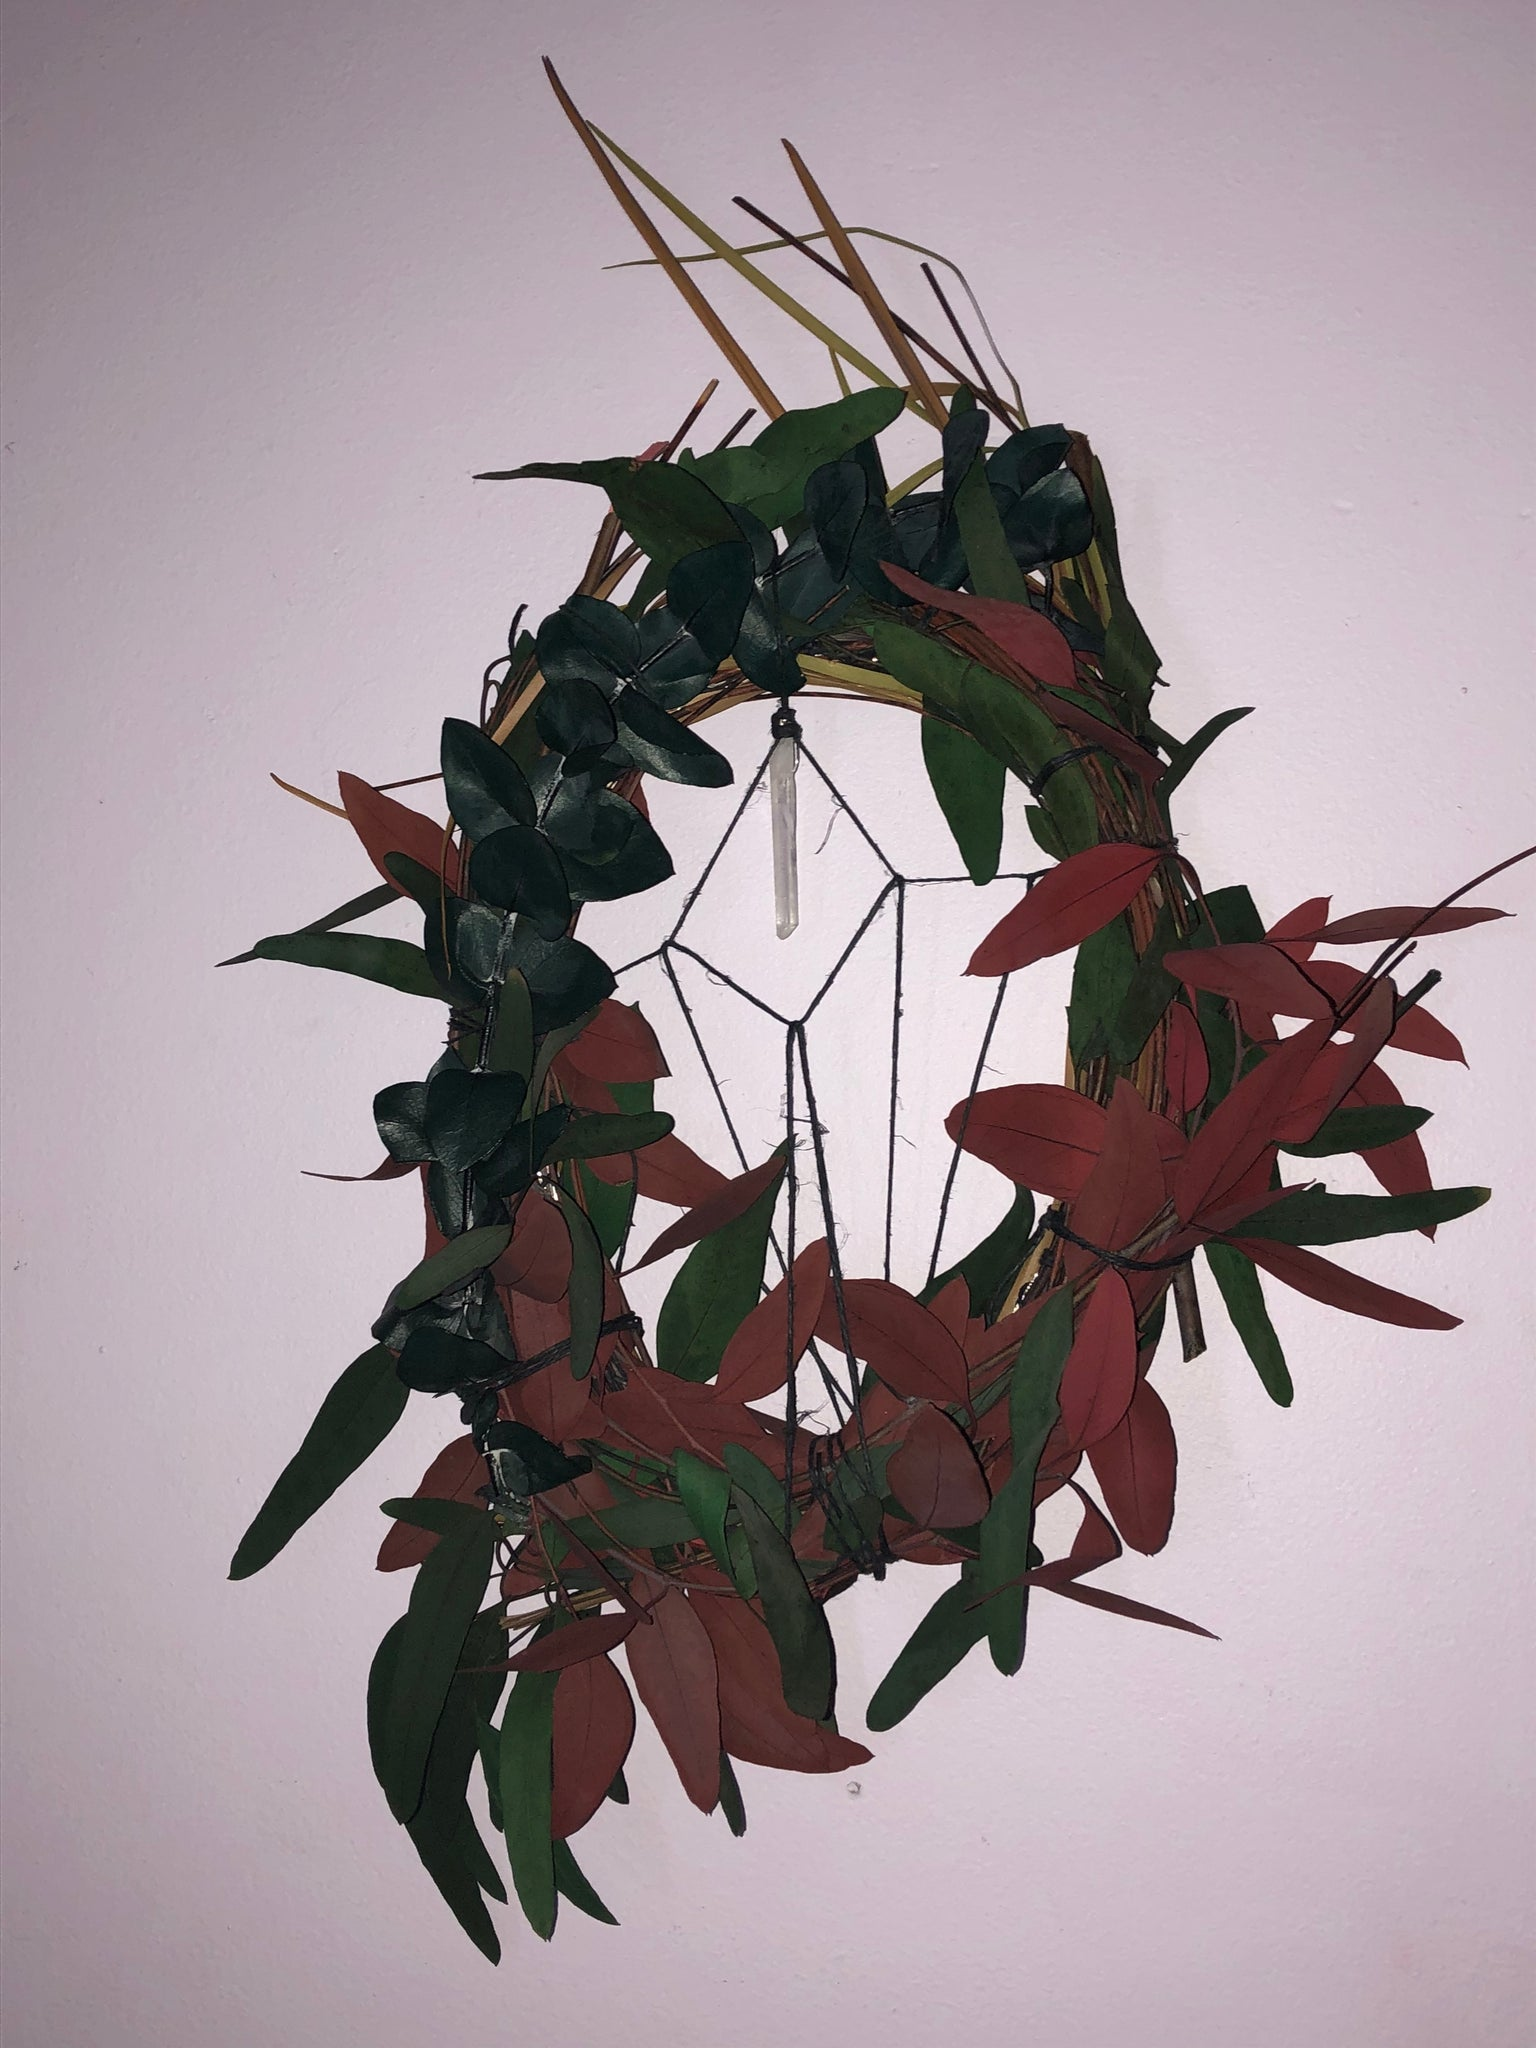 Hand Made Leaf and Twig Dream Catcher Wreath with Quartz - The Whimsy Crystal Shop